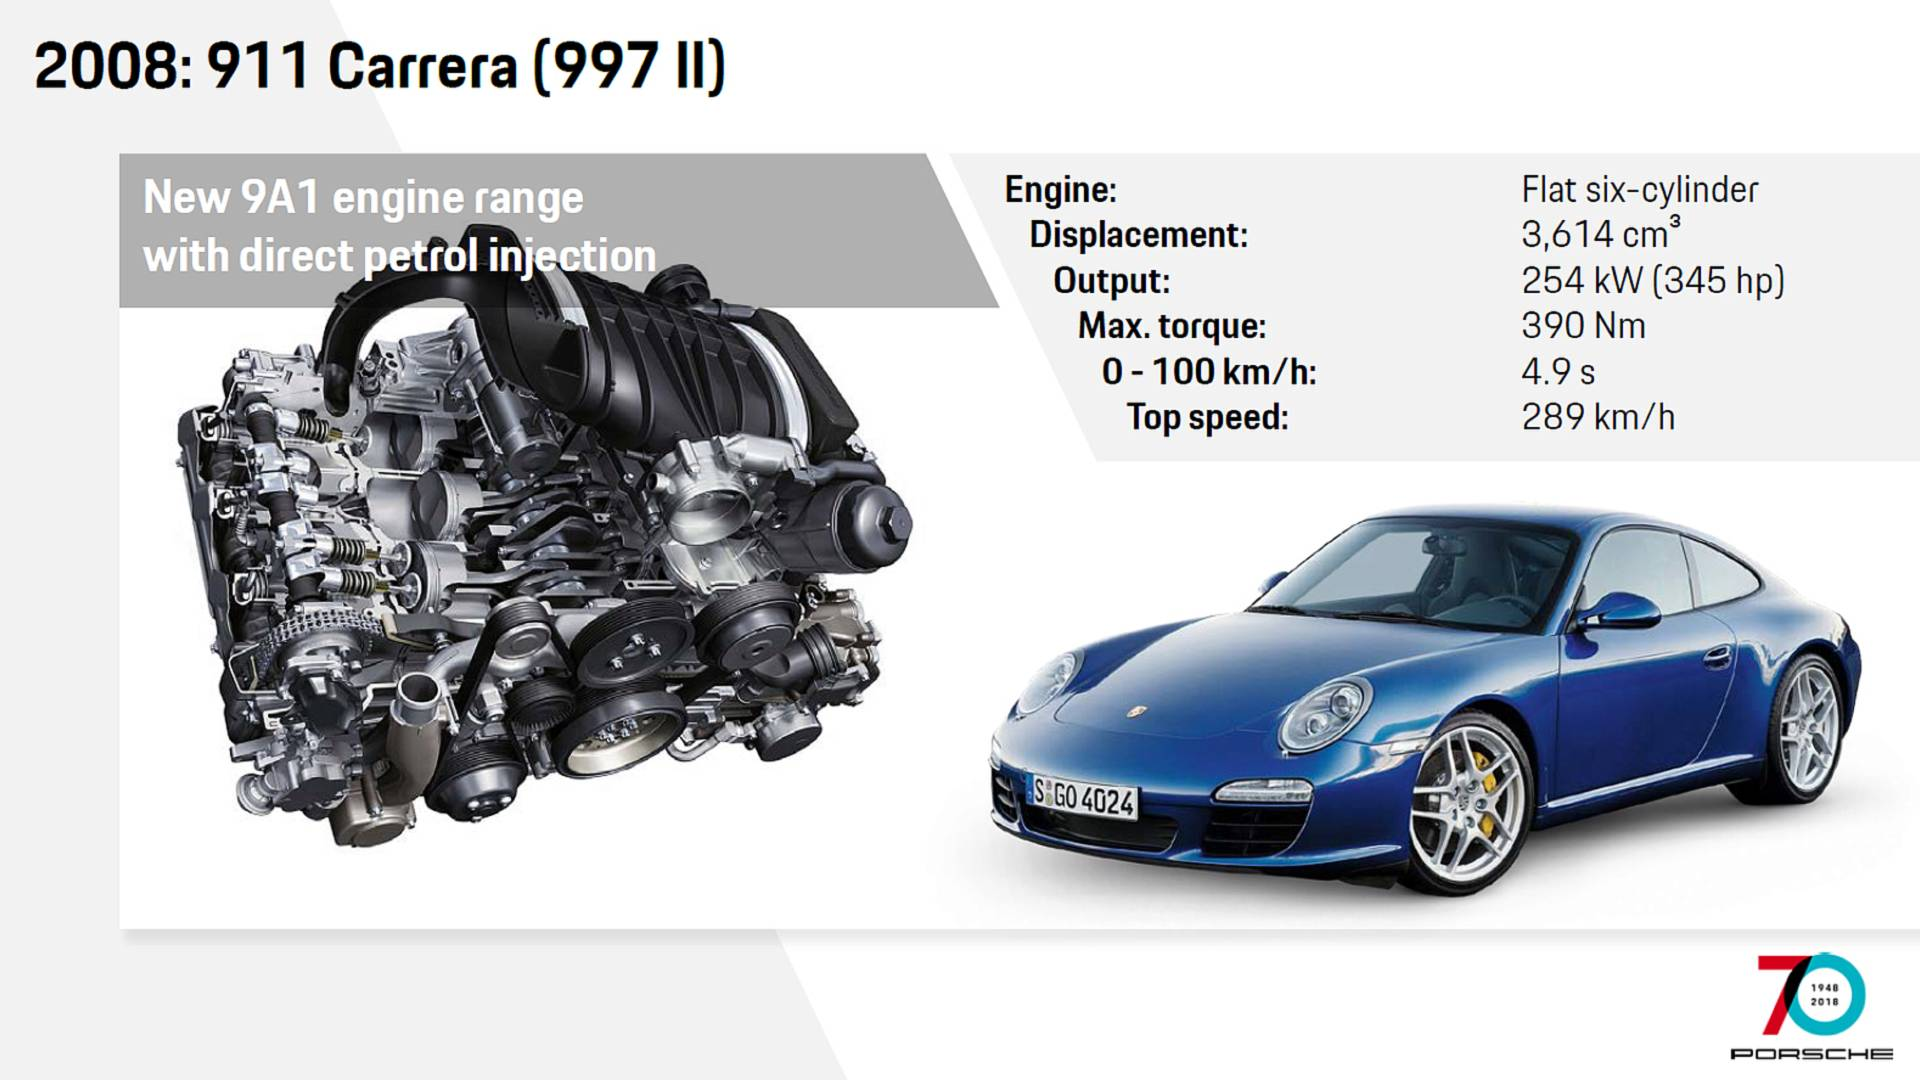 See How The Porsche 911 Has Evolved Through The Years